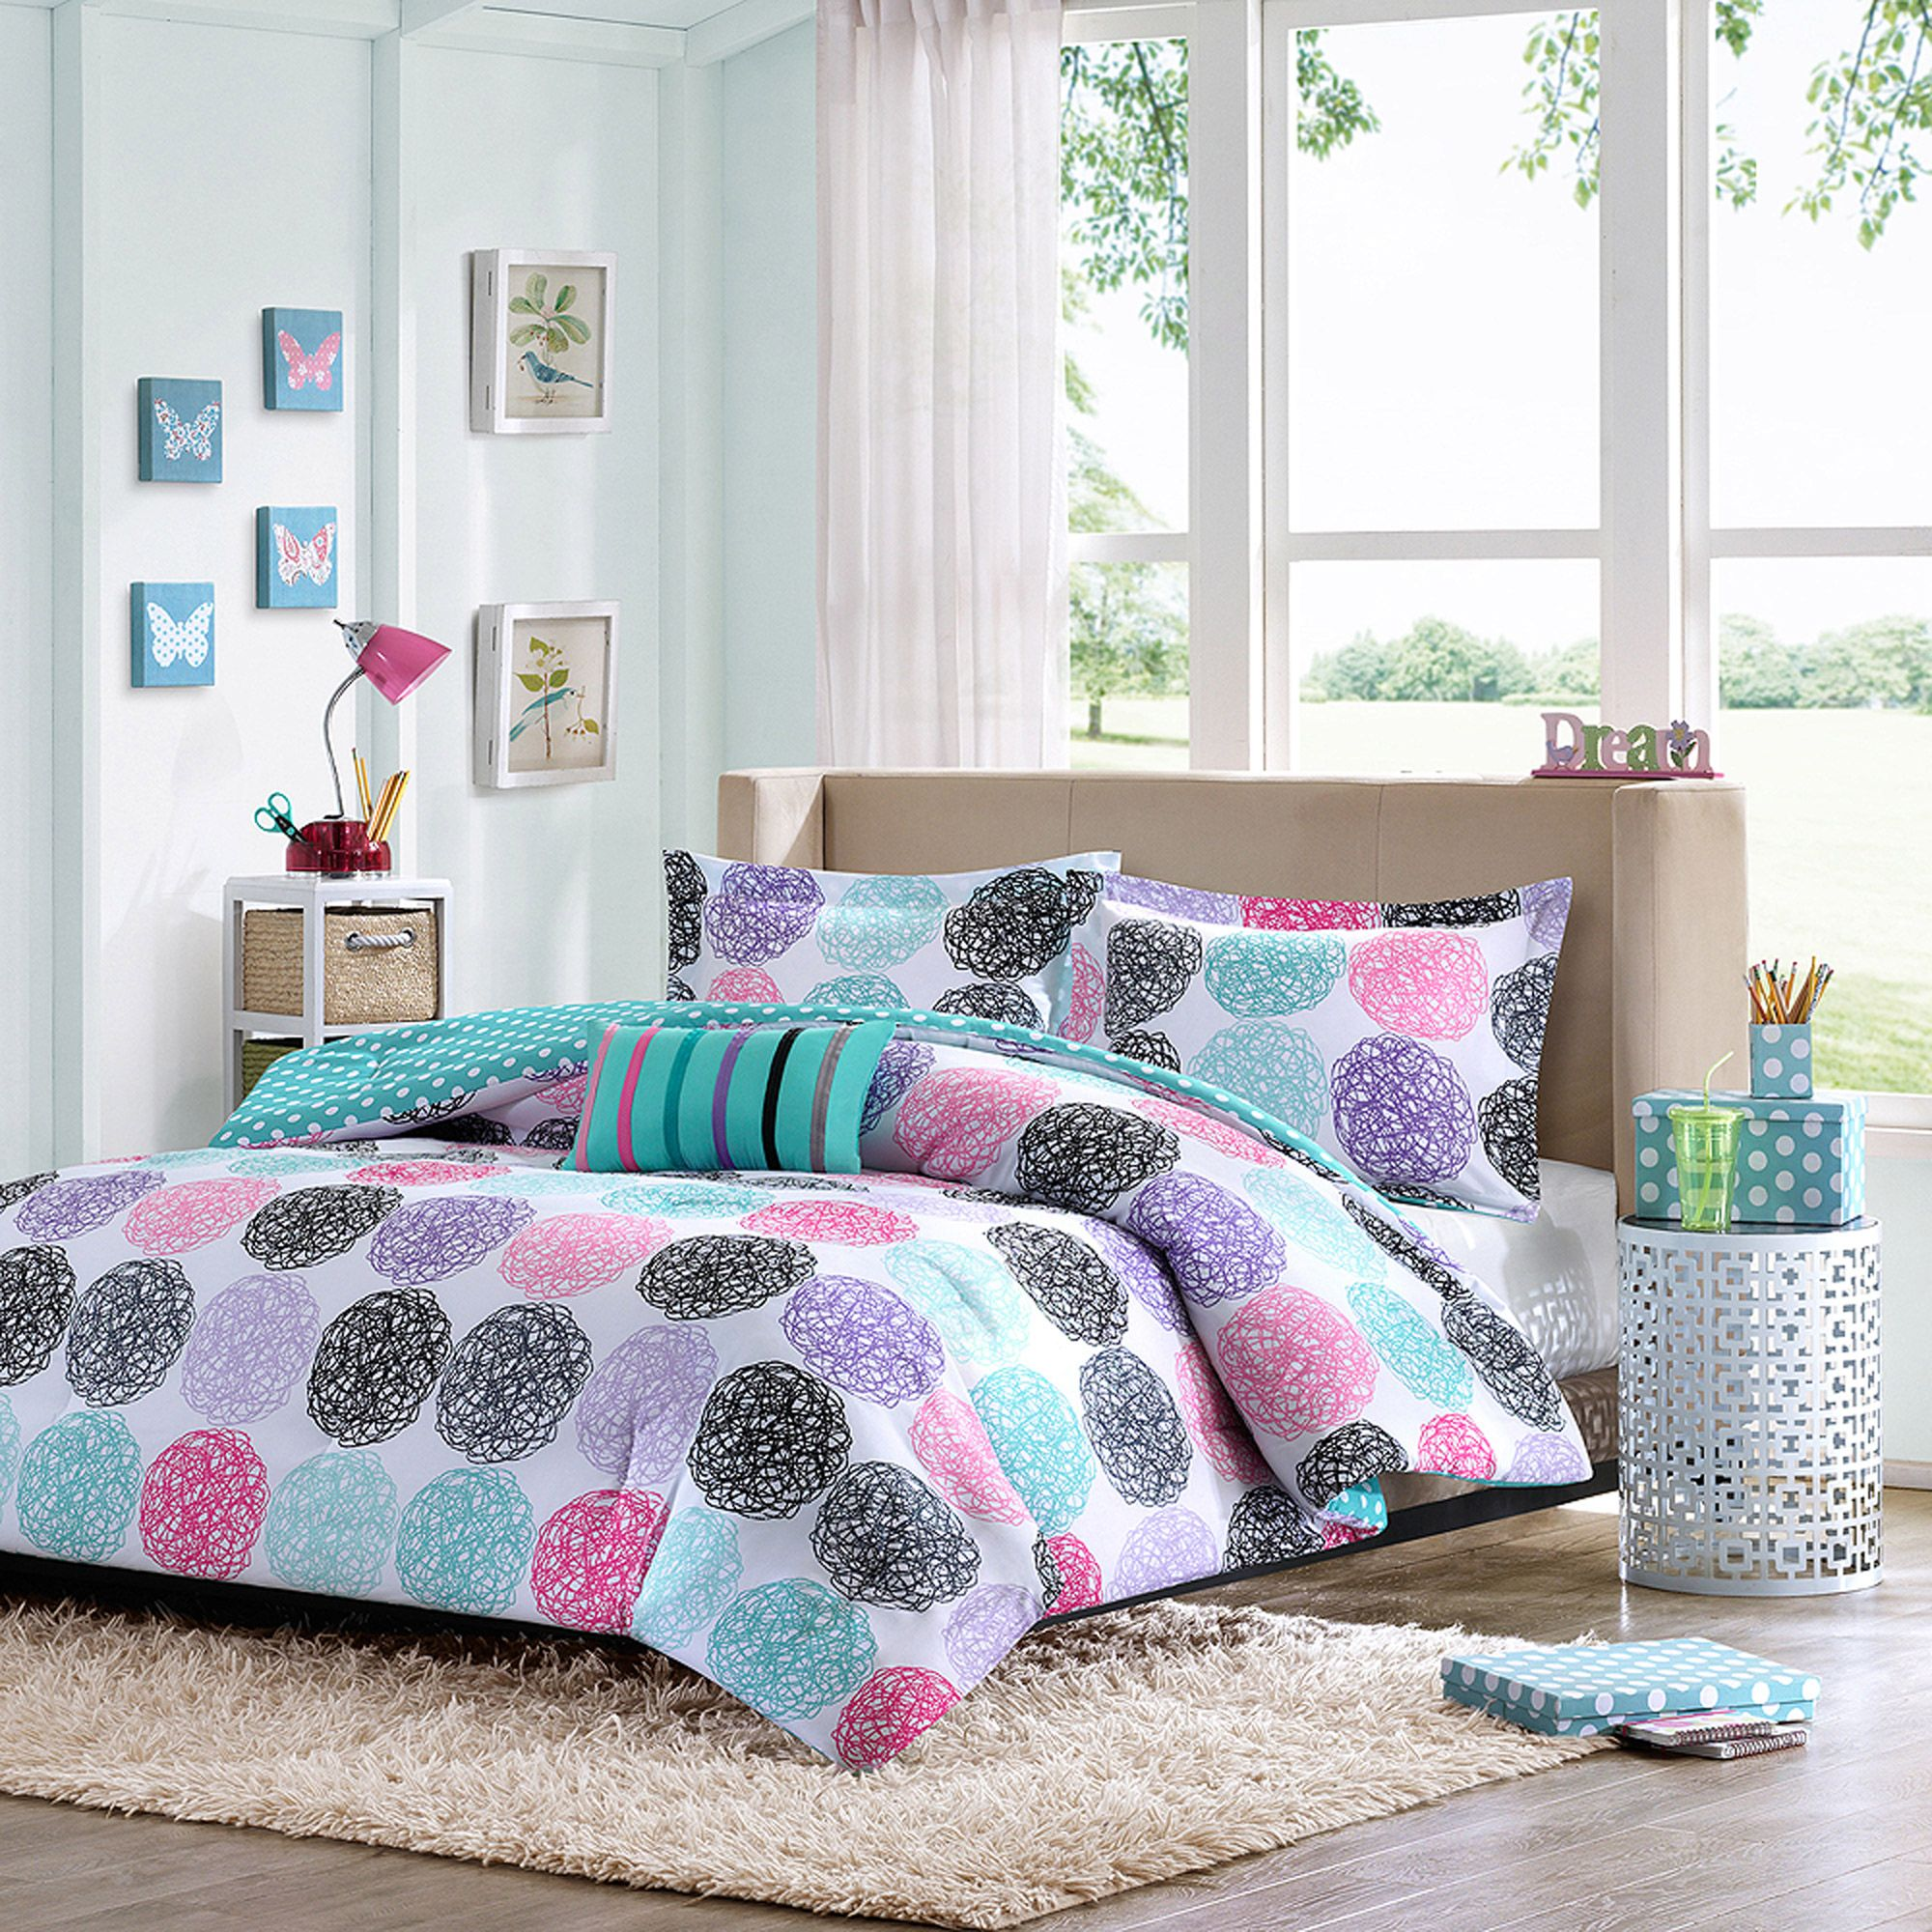 Home Essence Apartment Brittany Bedding forter Set